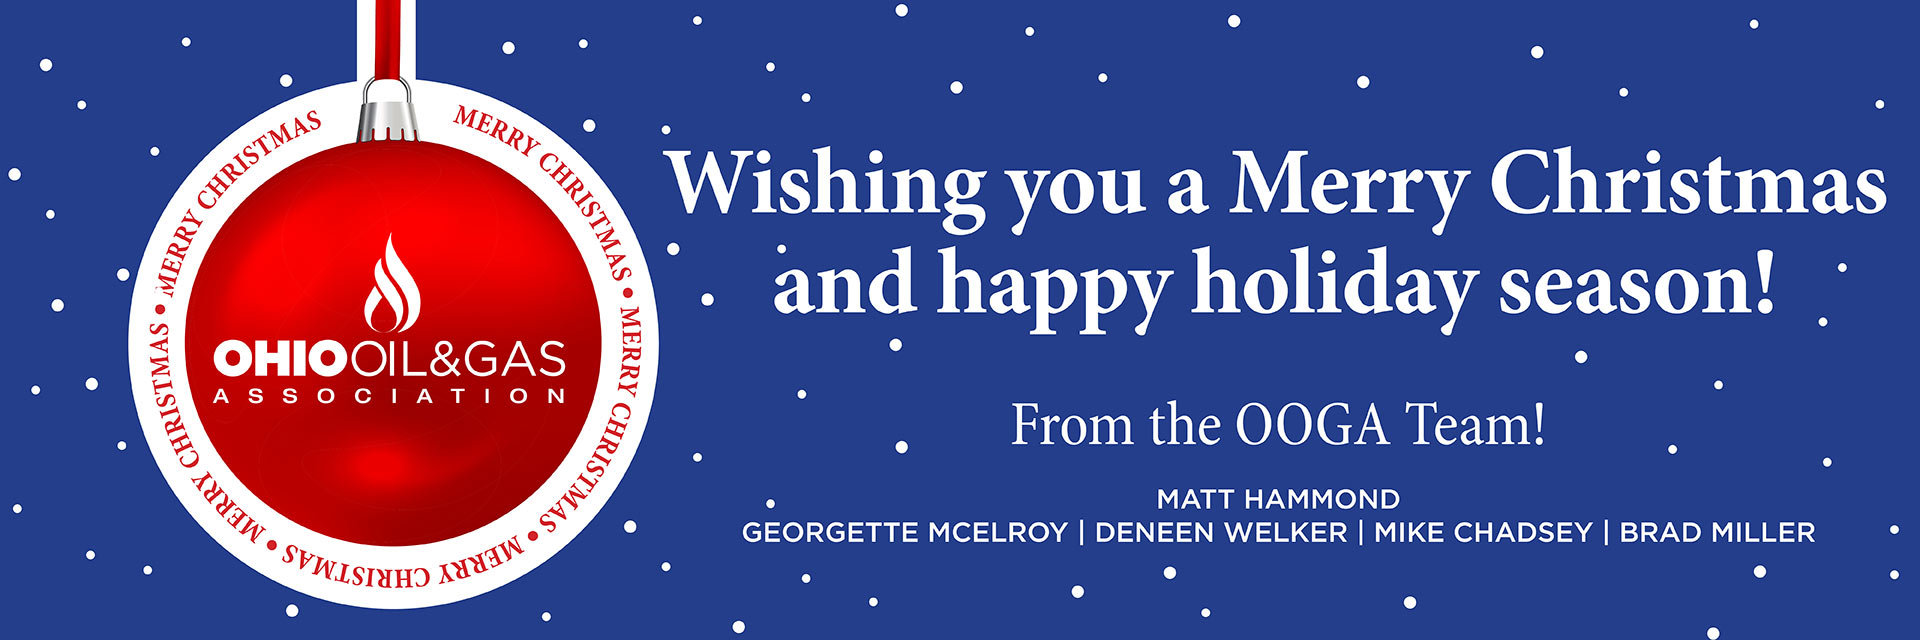 Wishing you a Merry Christmas and happy holiday season!